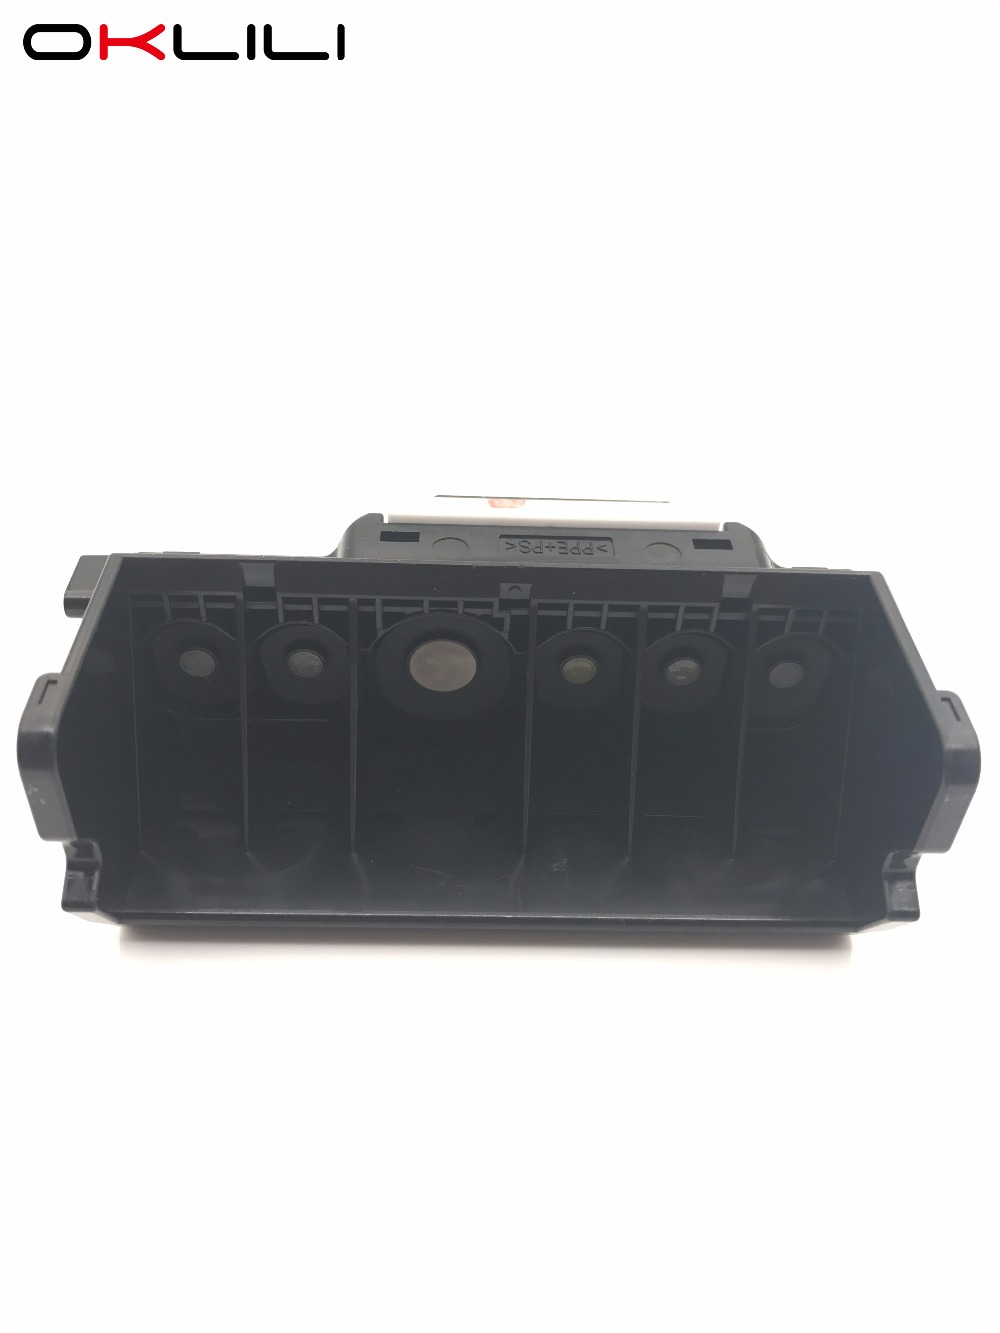 QY6-0078 QY6-0078-000 Printhead Printer Print Head for Canon MP990 MP996 MG6120 MG6140 MG6180 MG6280 MG8120 MG8180 MG8280 MG6250 джон дэвисон рокфеллер как я нажил 500 000 000 мемуары миллиардера